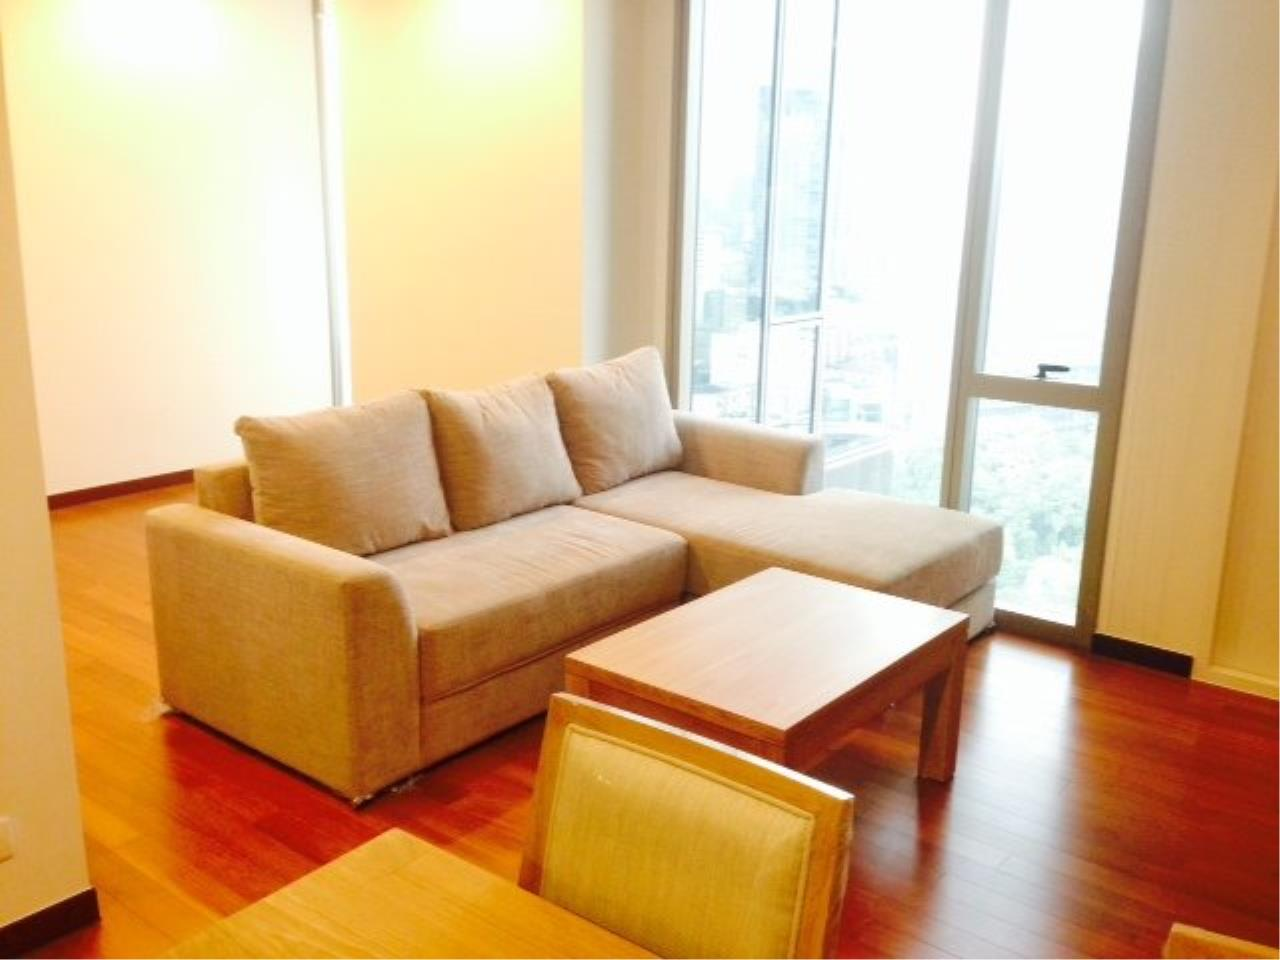 Piri Property Agency's Cozy 1 Bedroom Condo in the Ashton Bulding for rent on high floor 2